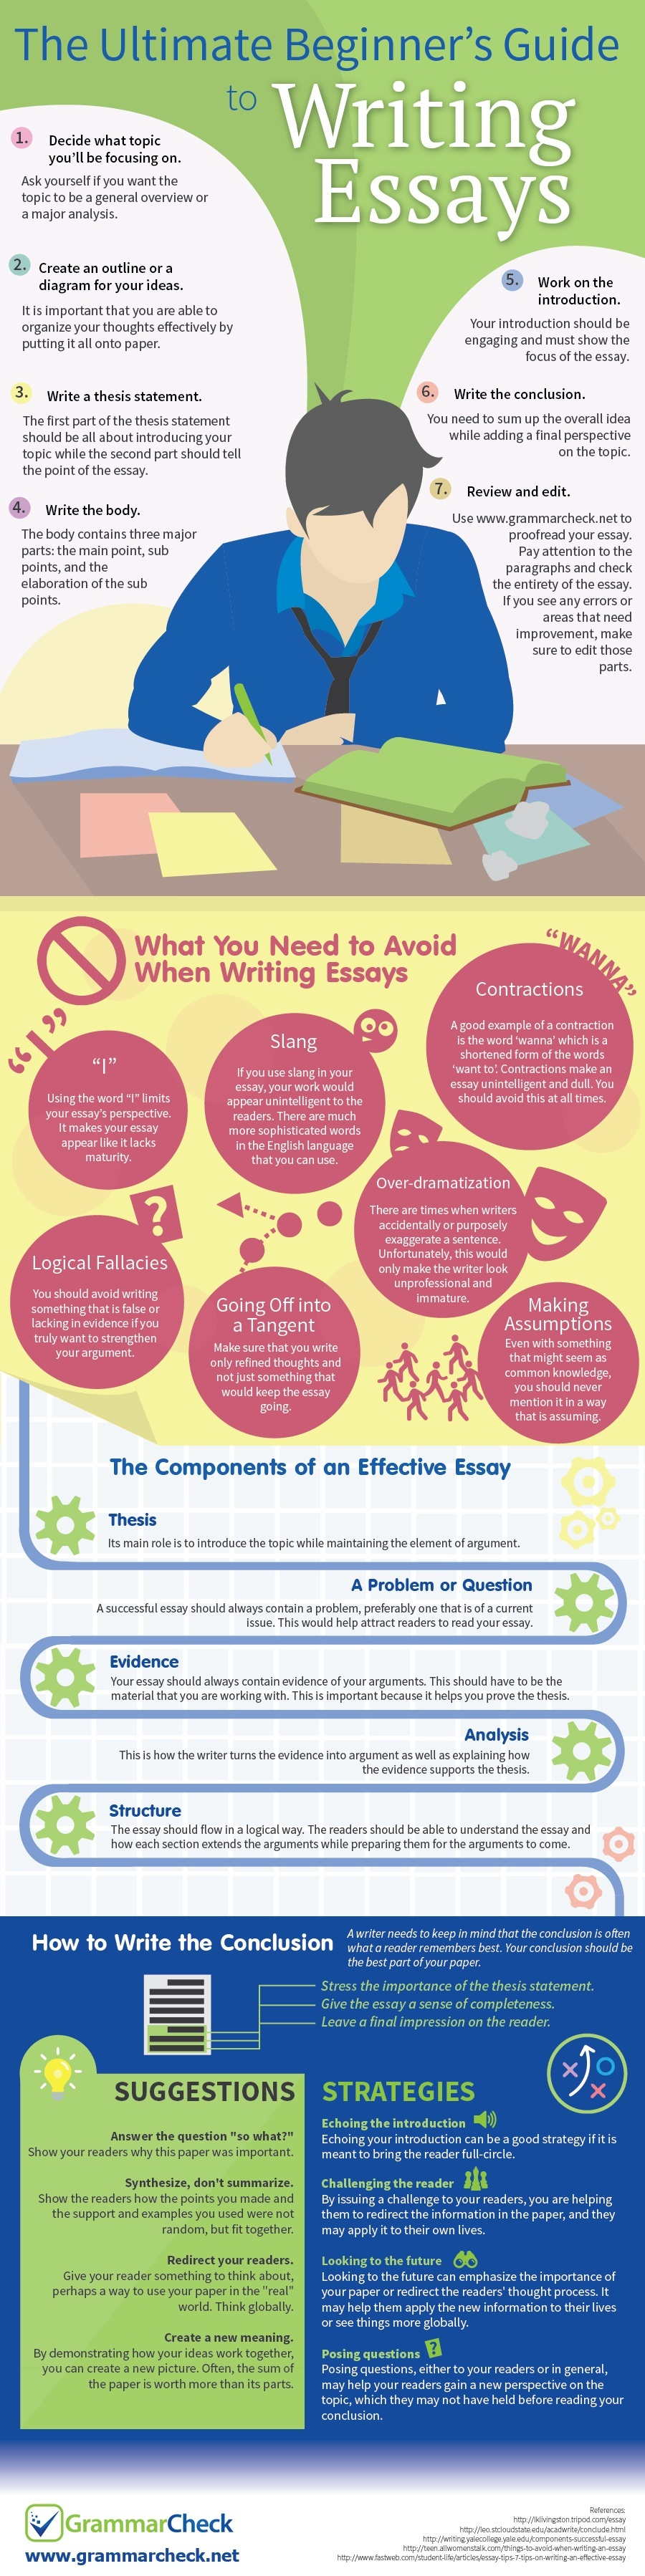 infographic essays trials technology the ultimate beginner s guide to writing essays infographic